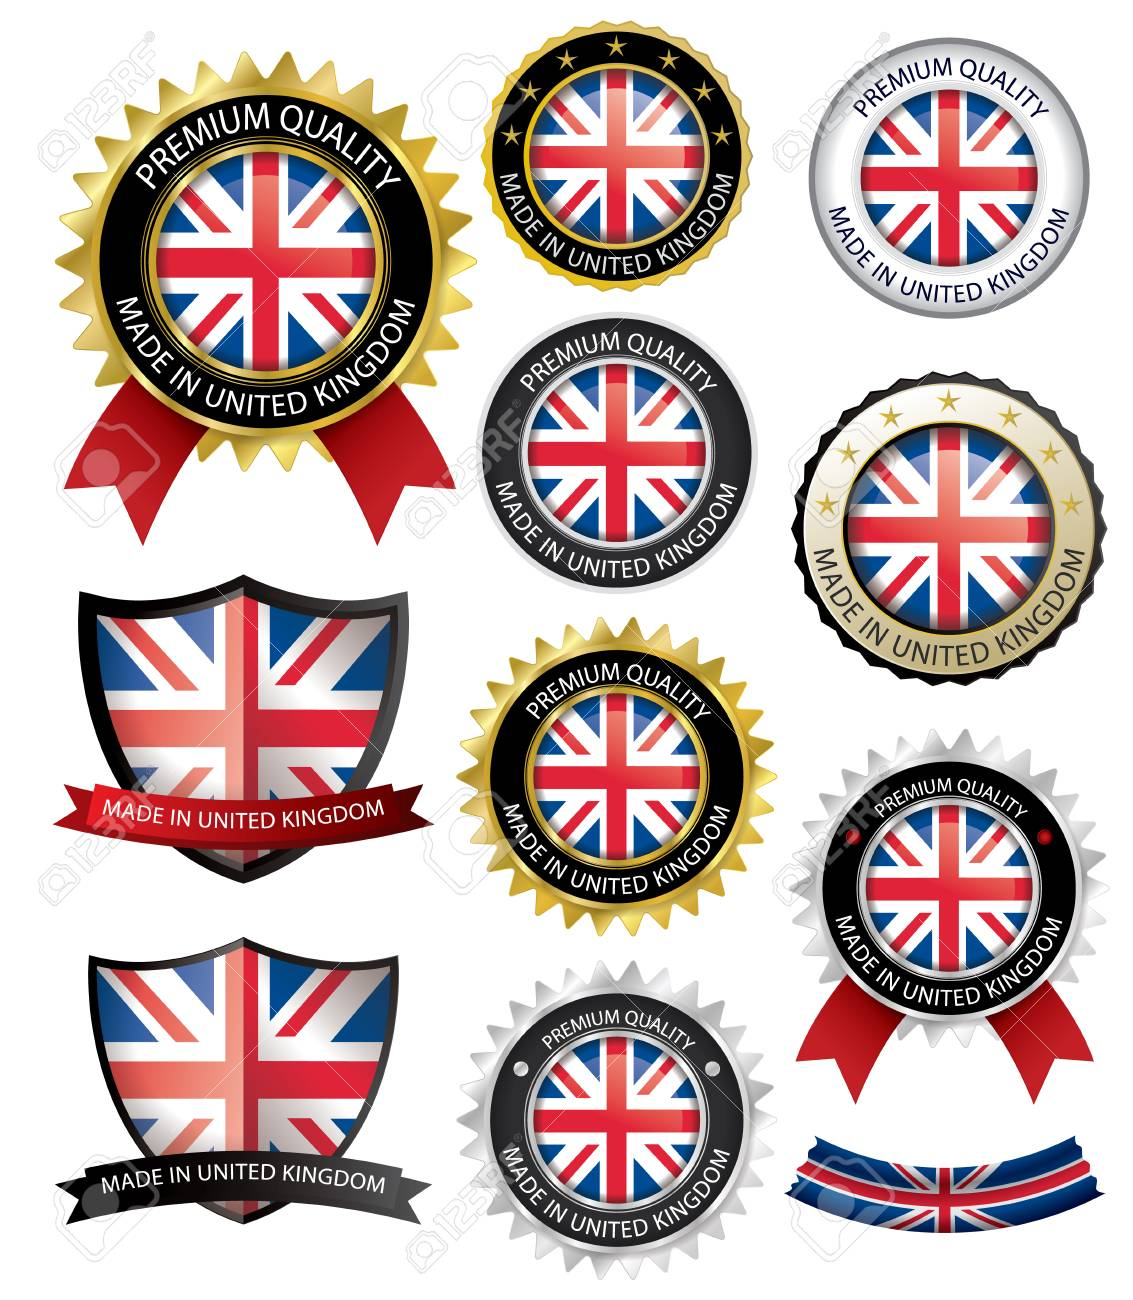 hight resolution of made in uk seal united kingdom flag vector art eps10 royalty free cliparts vectors and stock illustration image 75266855